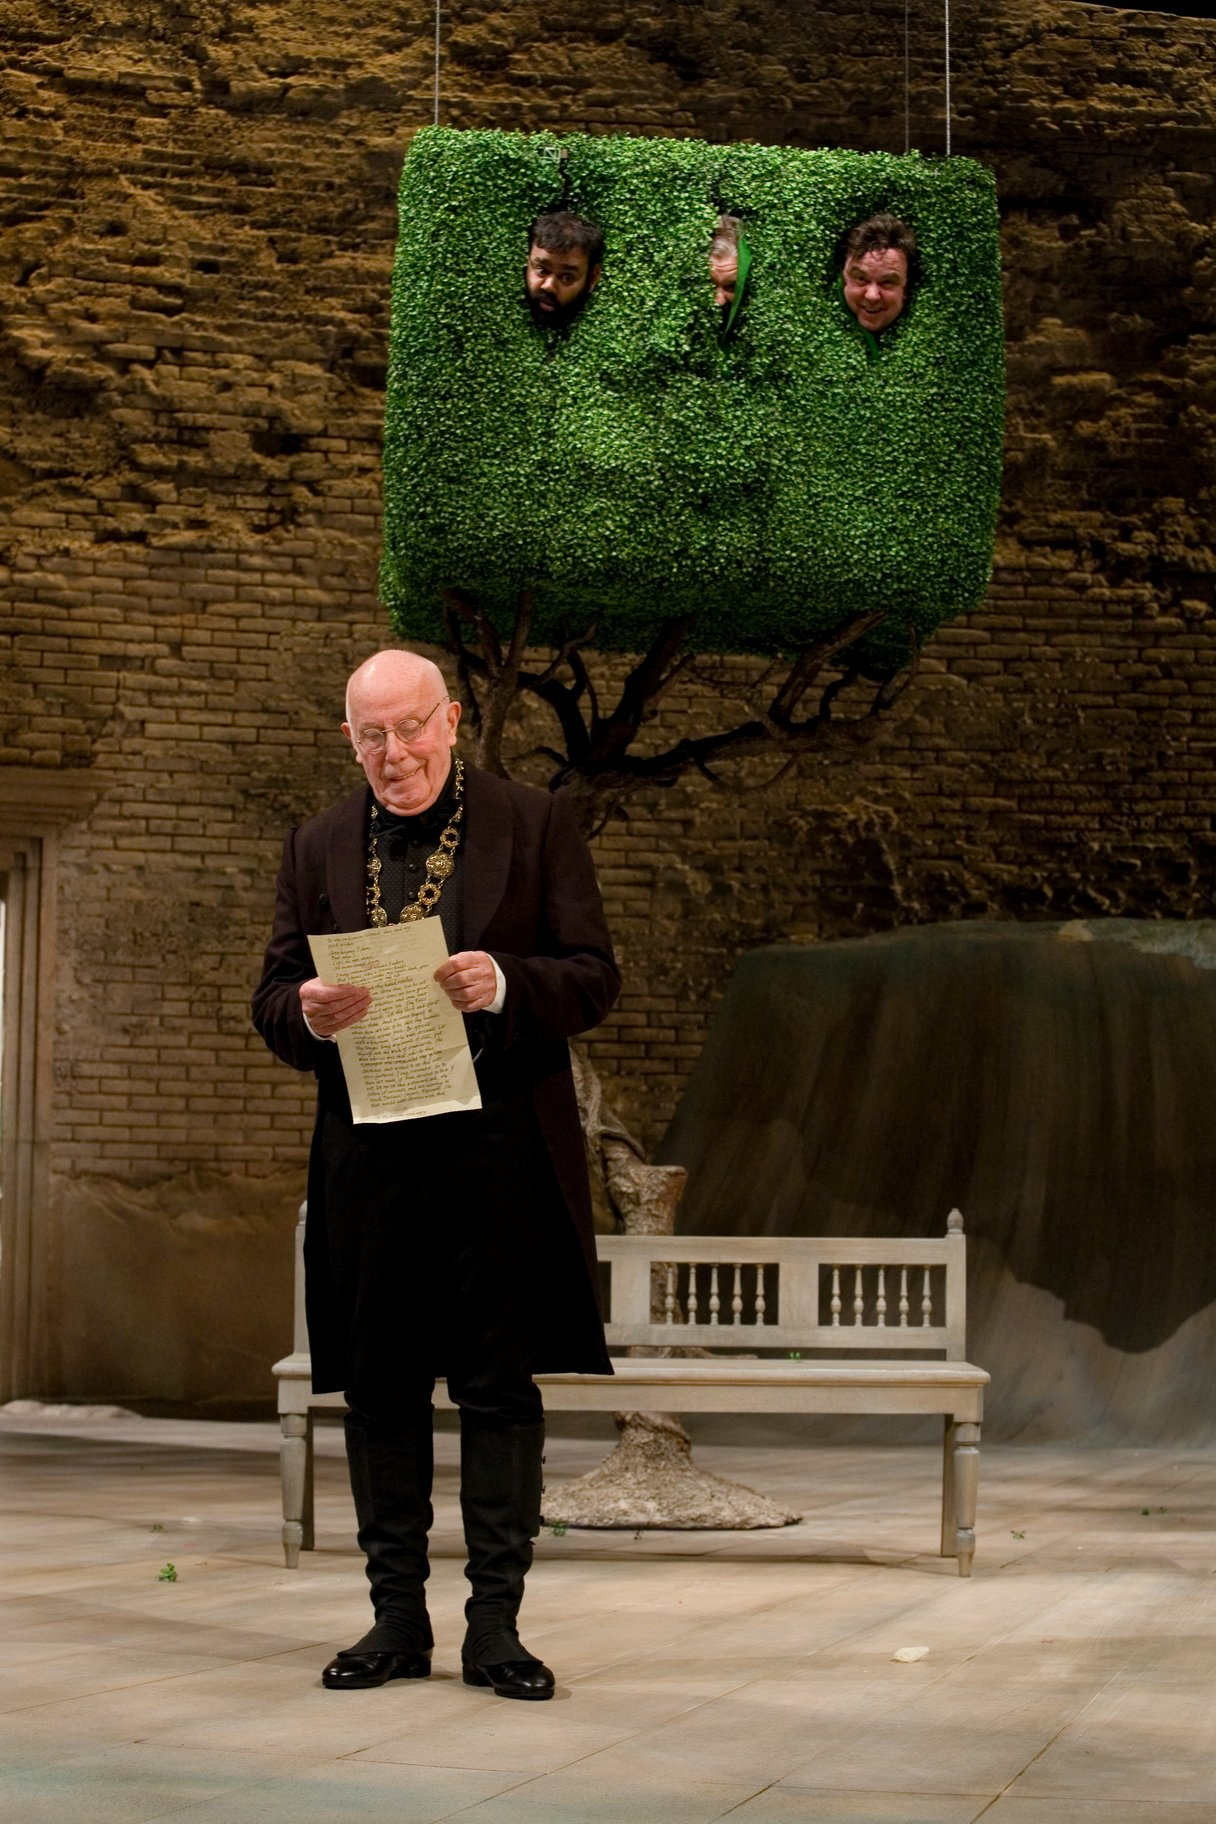 Malvolio dressed in black with a gold chain reads a letter while watched by Sir Toby, Sir Andrew and Fabain who are hidden in a tree above him, with their faces sticking out in the 2009 production of Twelfth Night.